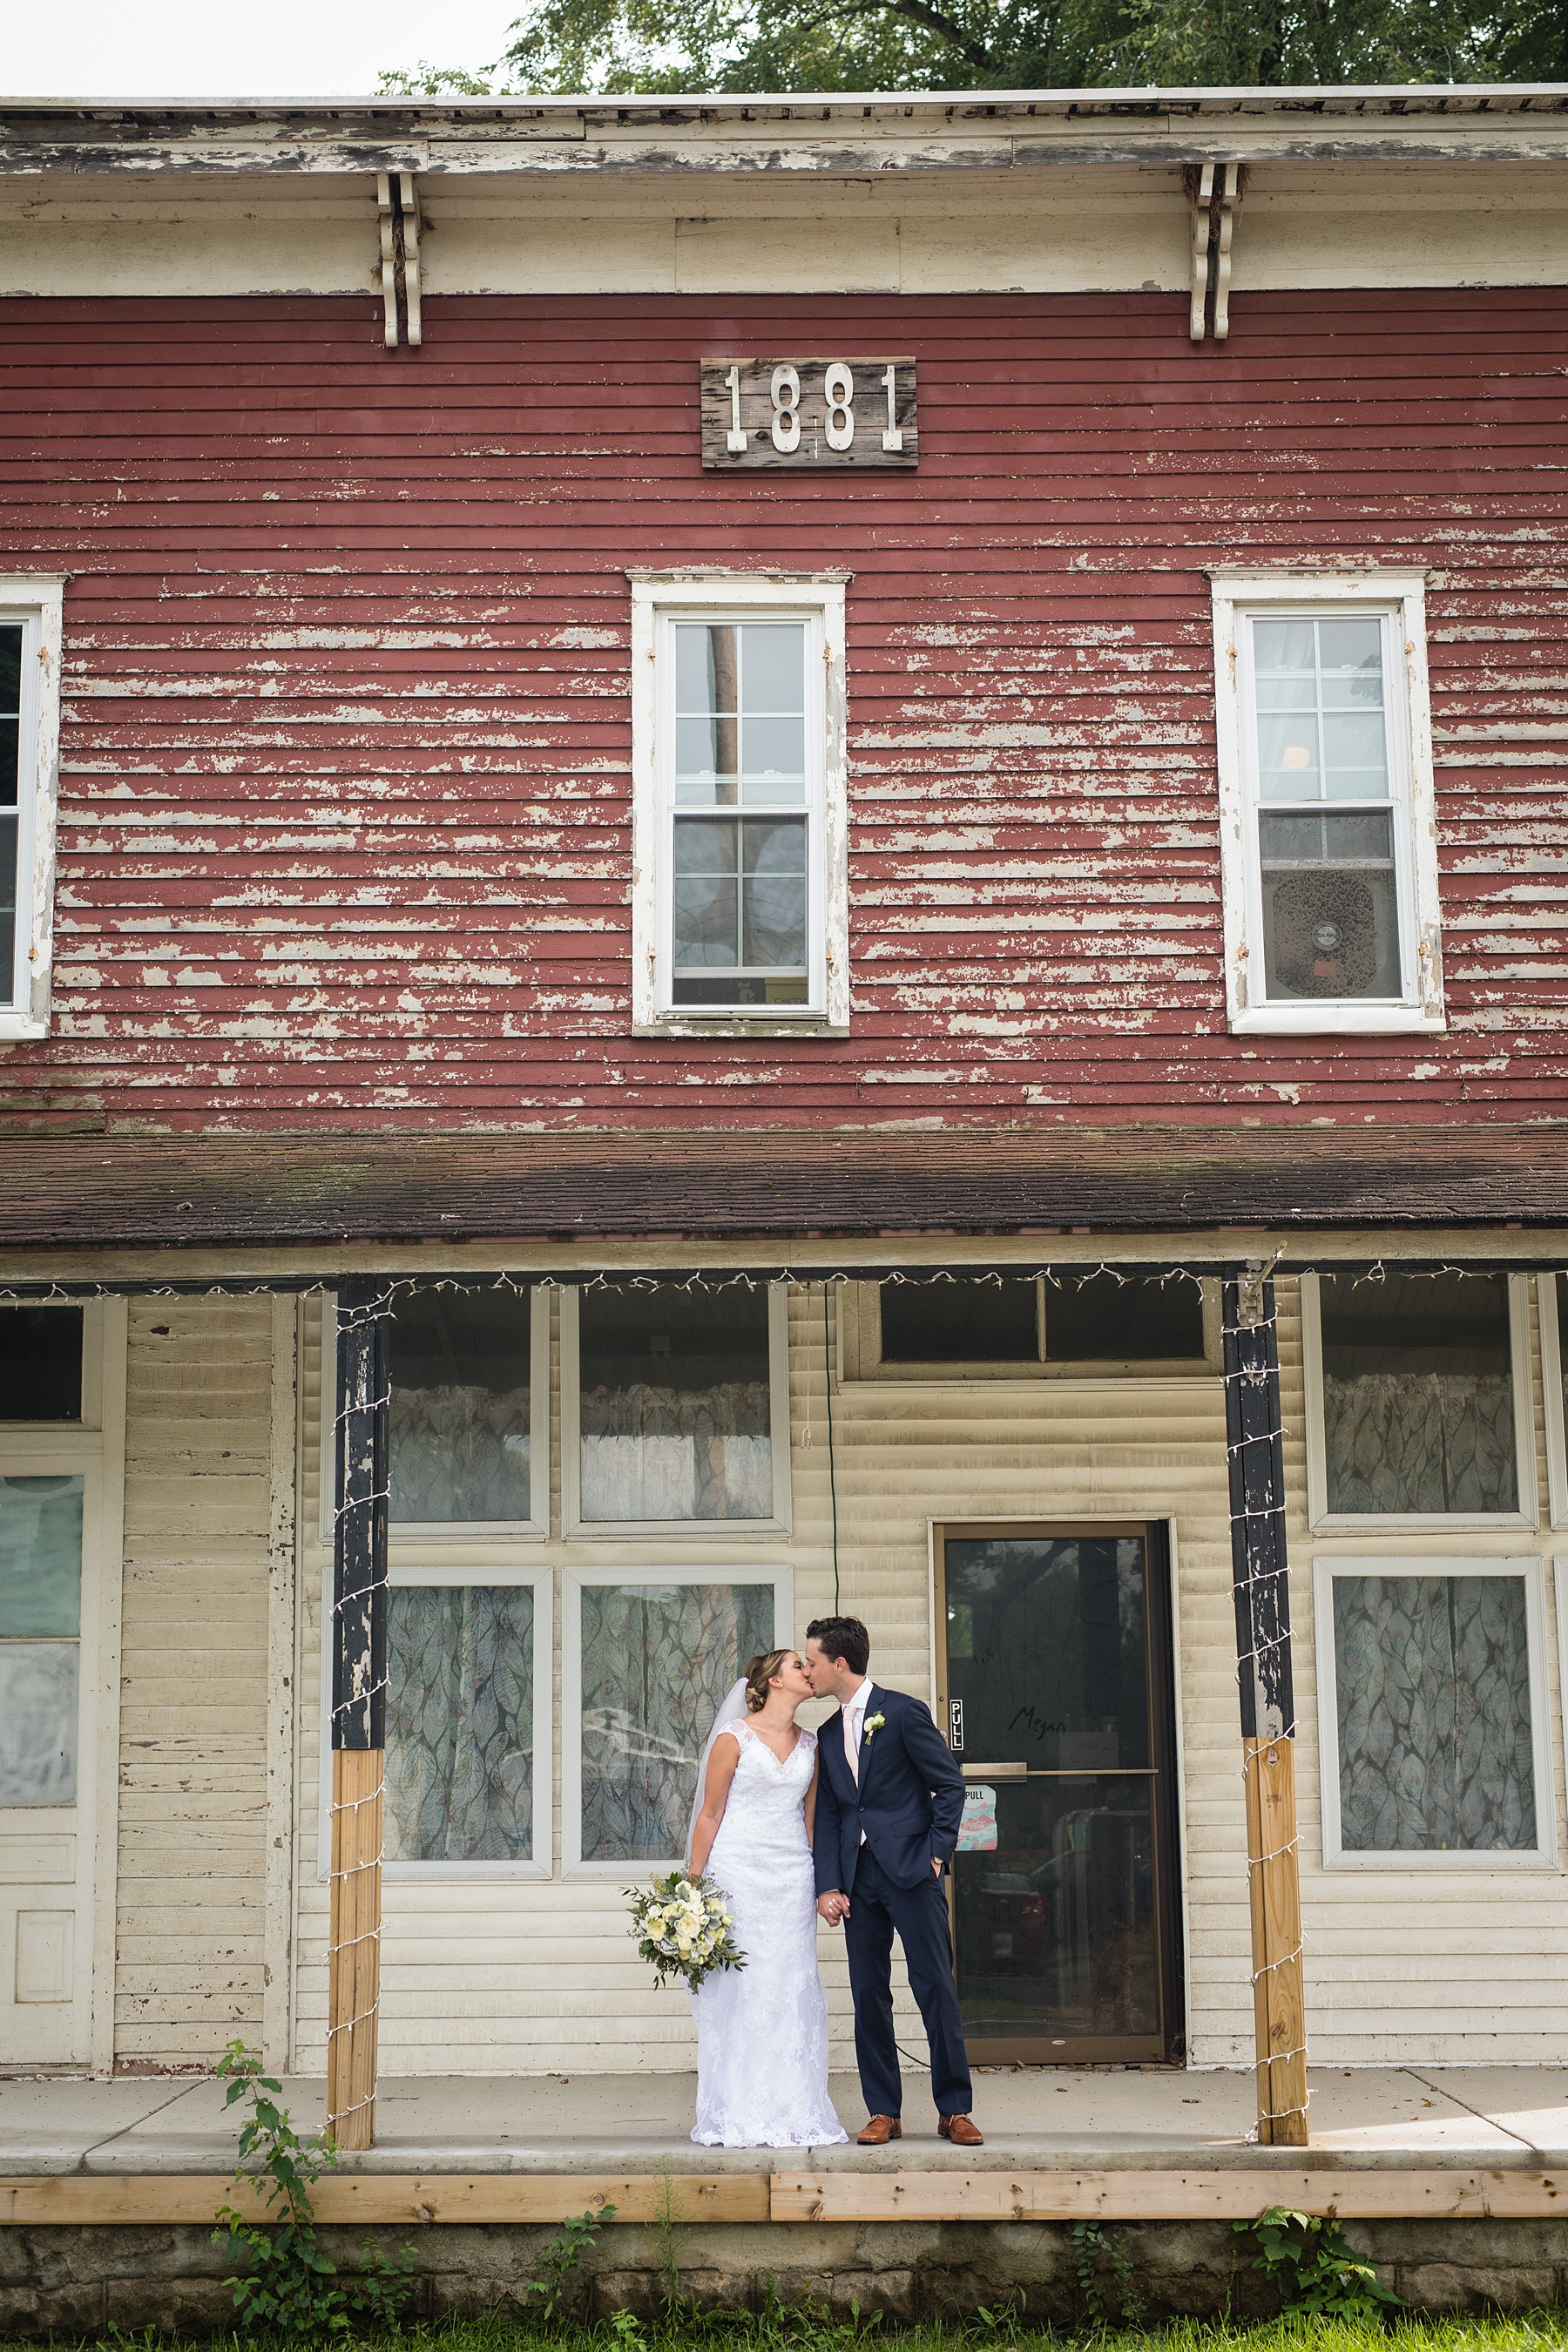 Brandon_Shafer_Photography_Emily_Steve_Bay_Pointe_GunLake_Wedding_0044.jpg